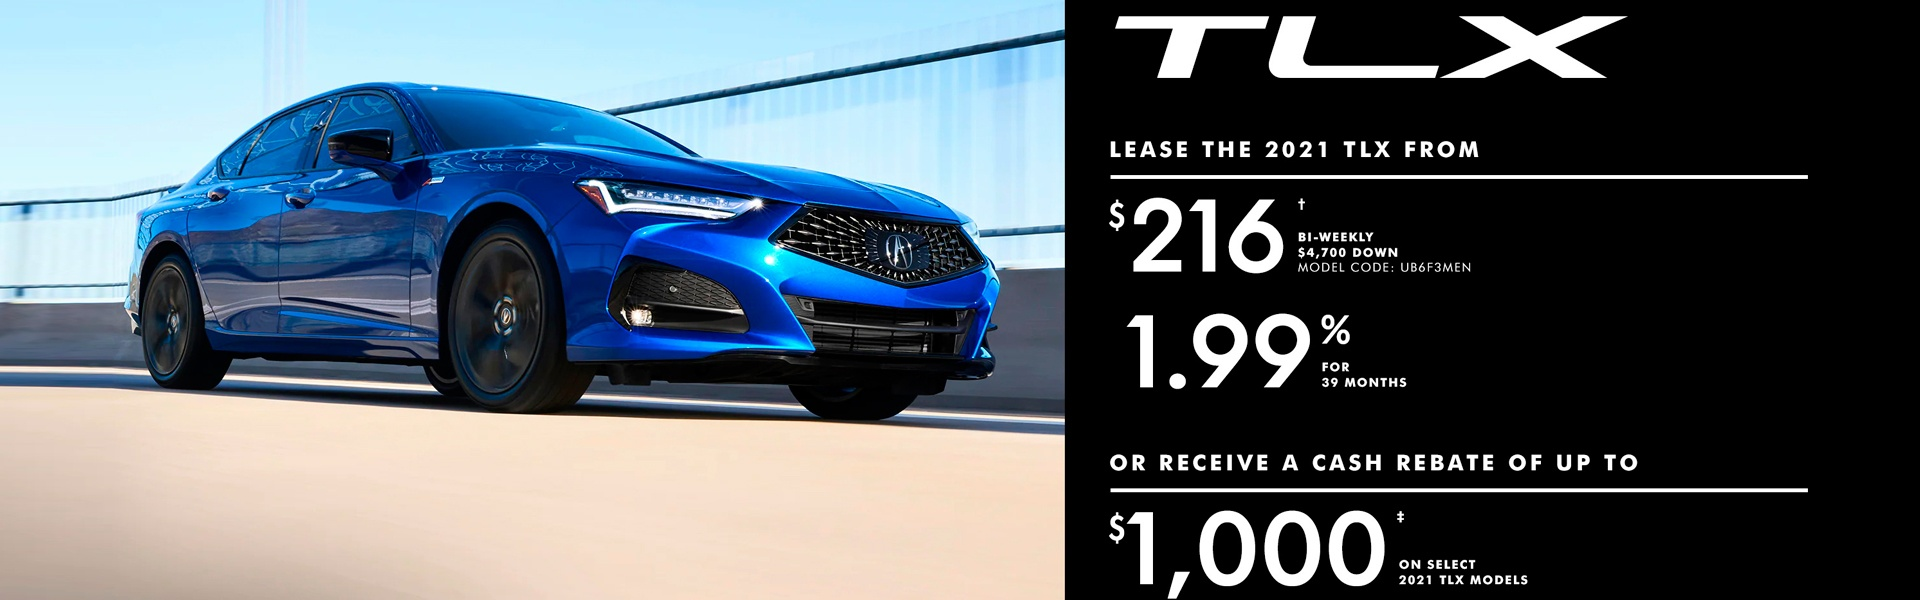 Lease the 2021 TLX